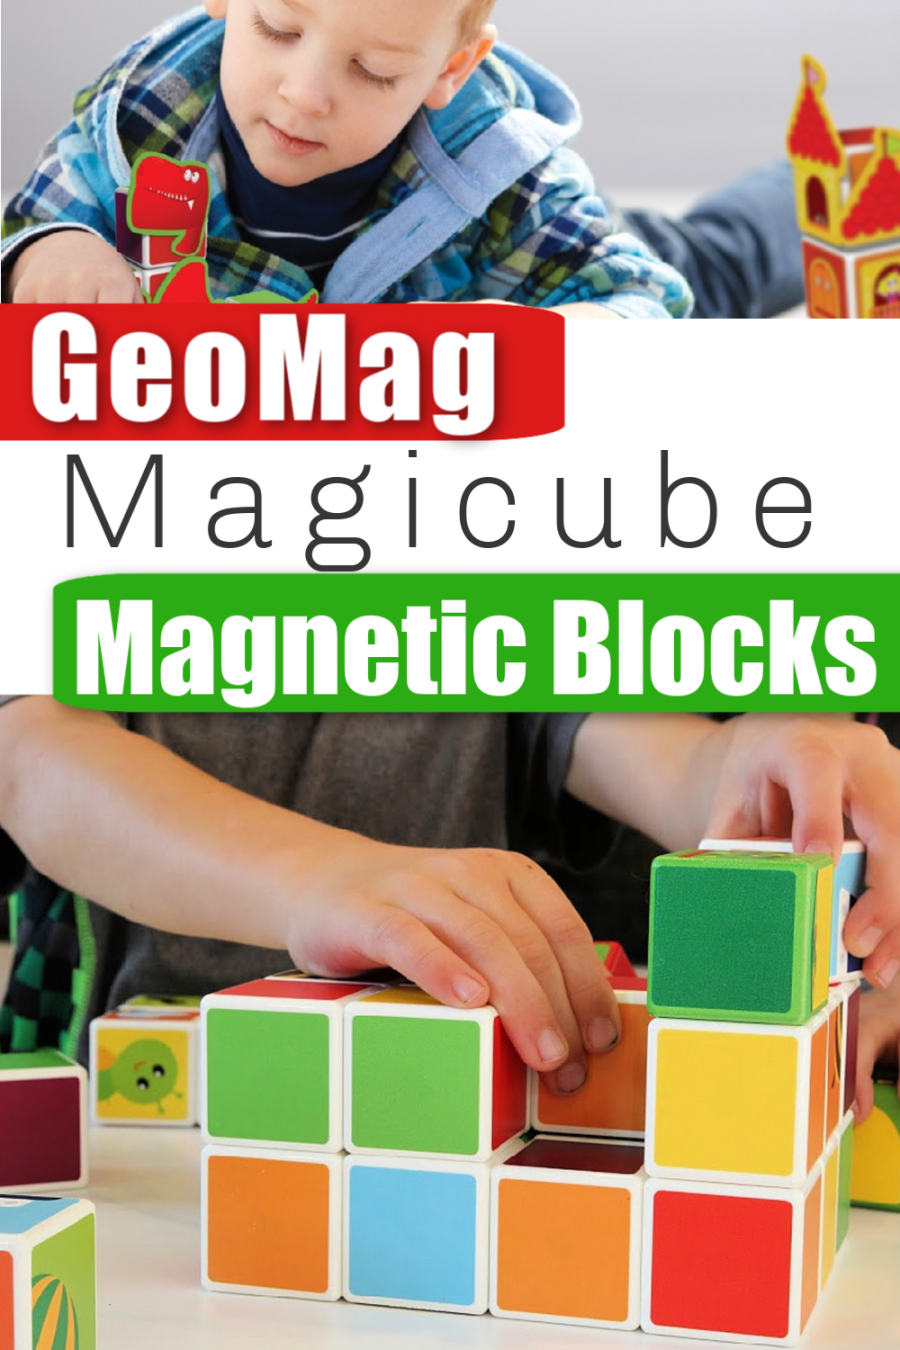 GeoMag Magicube - Magnetic Building Blocks 31